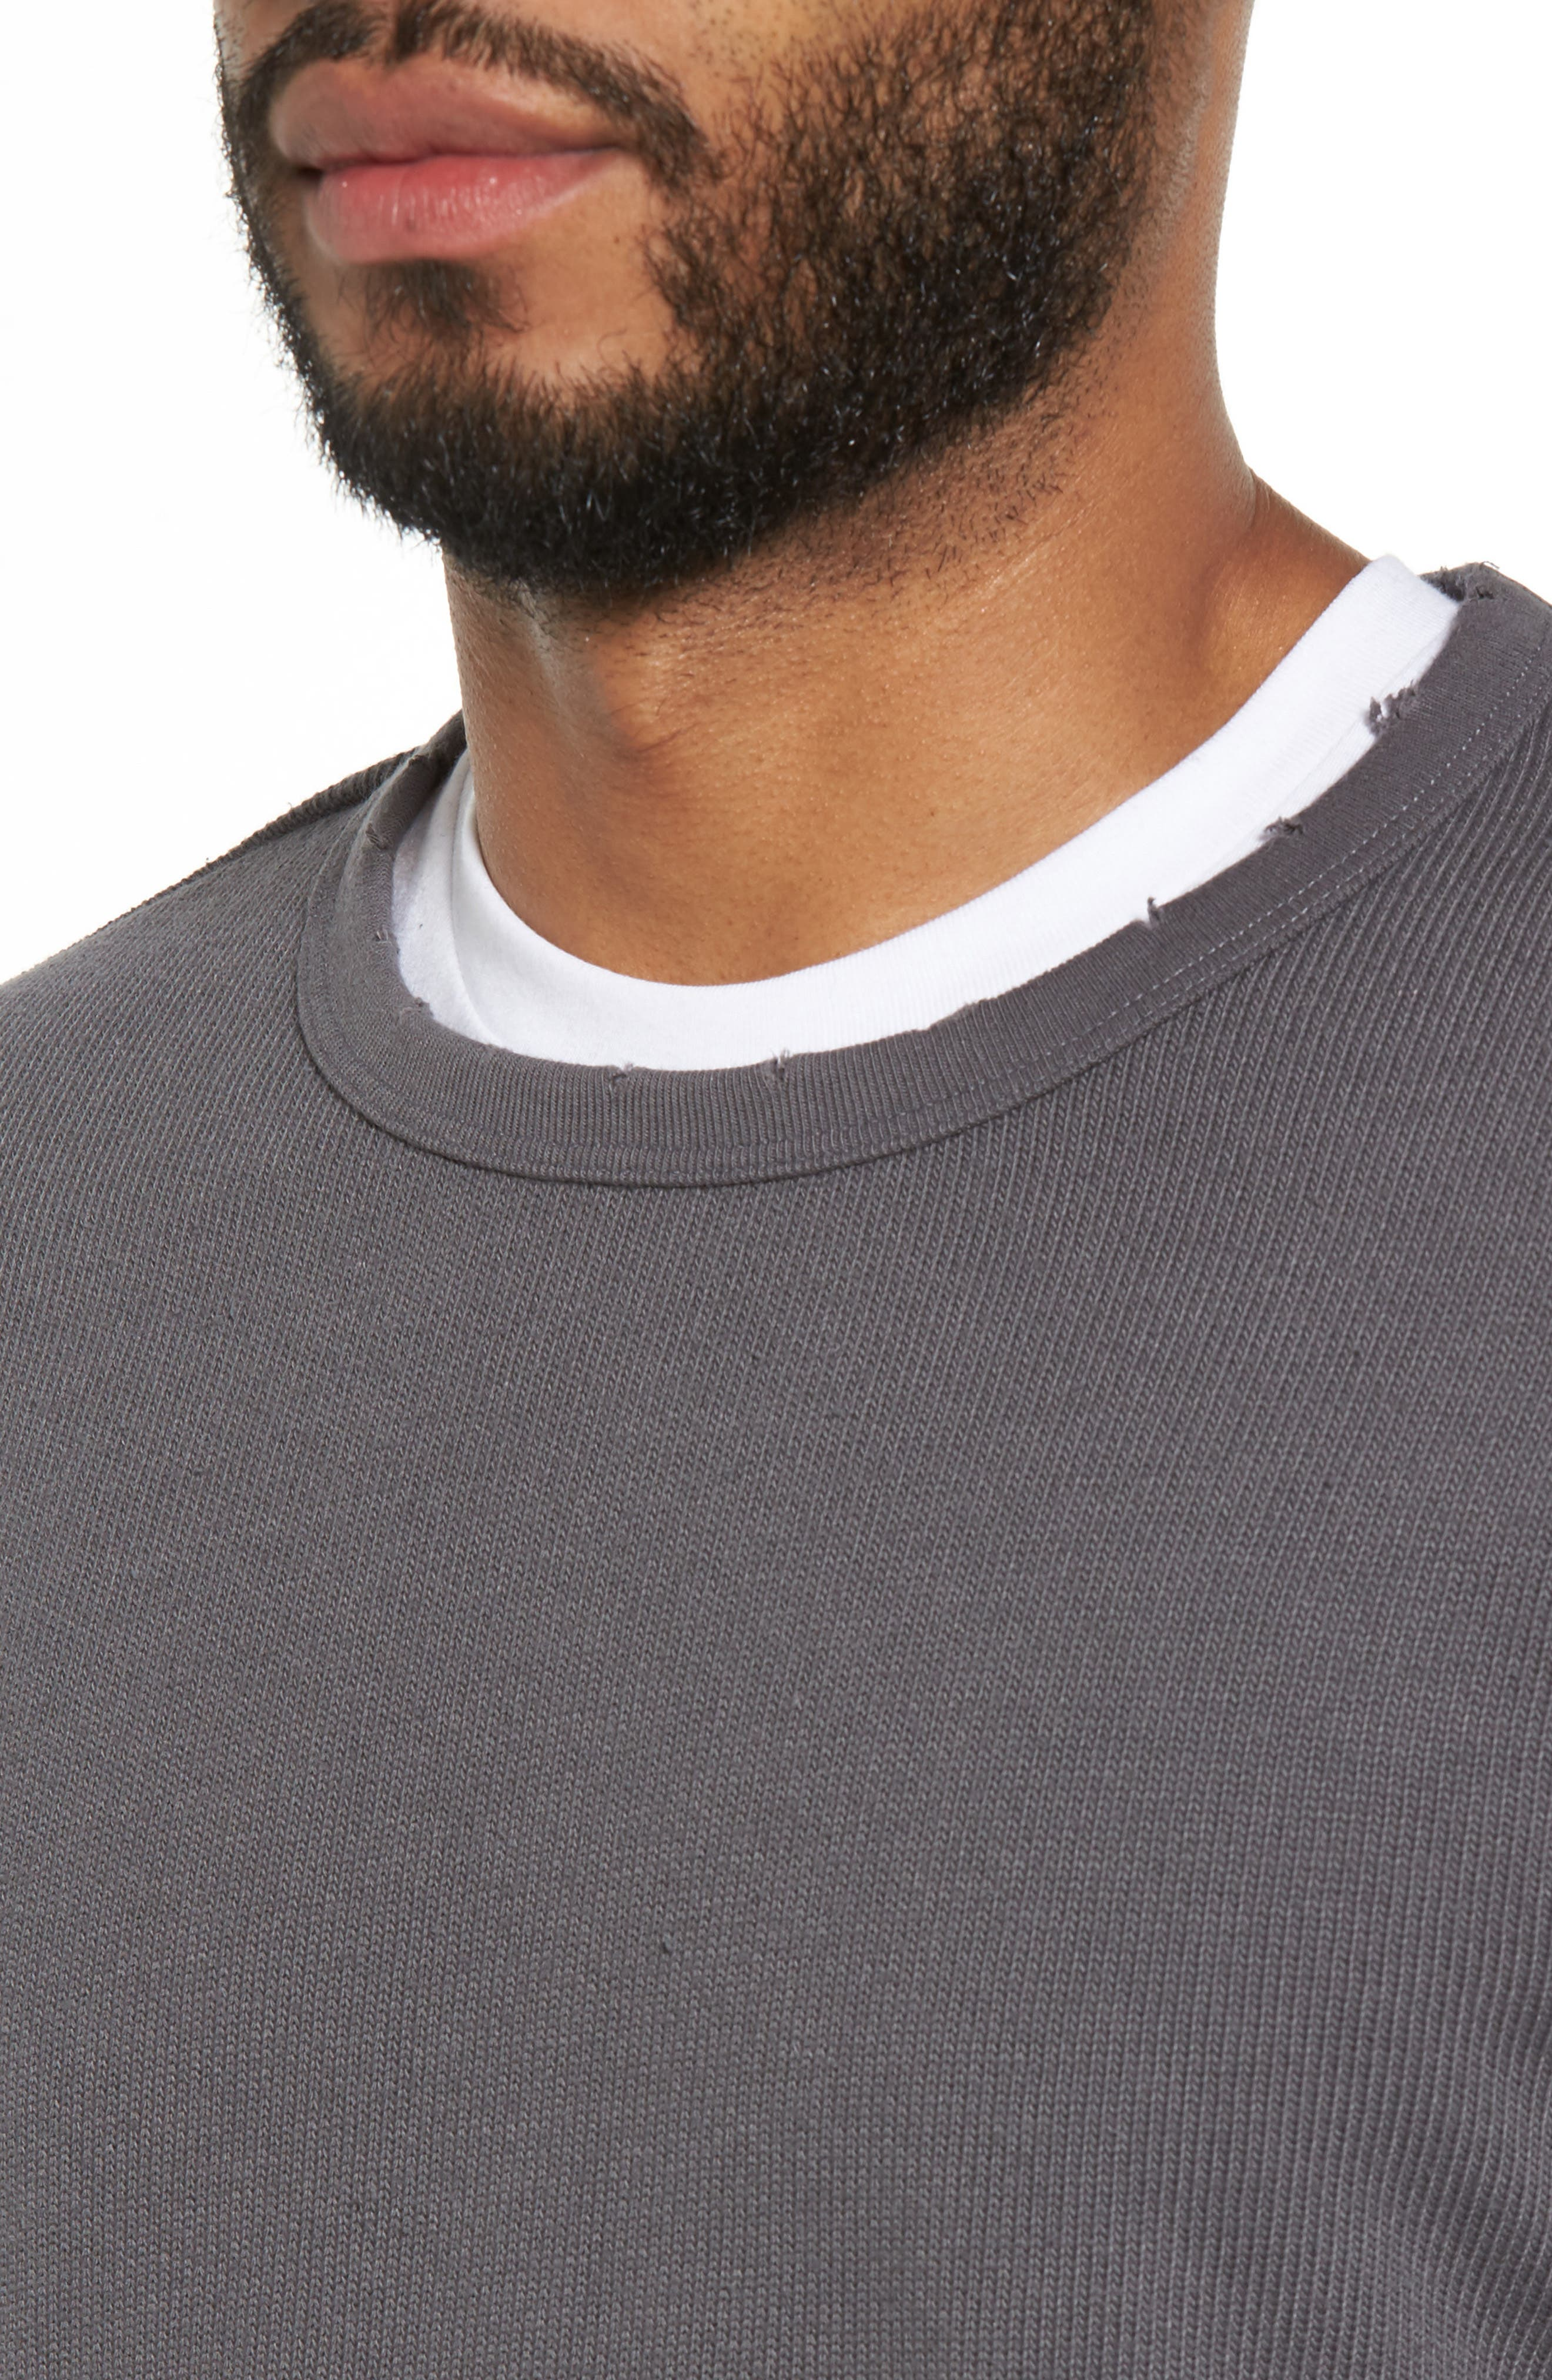 Crewneck Pullover,                             Alternate thumbnail 8, color,